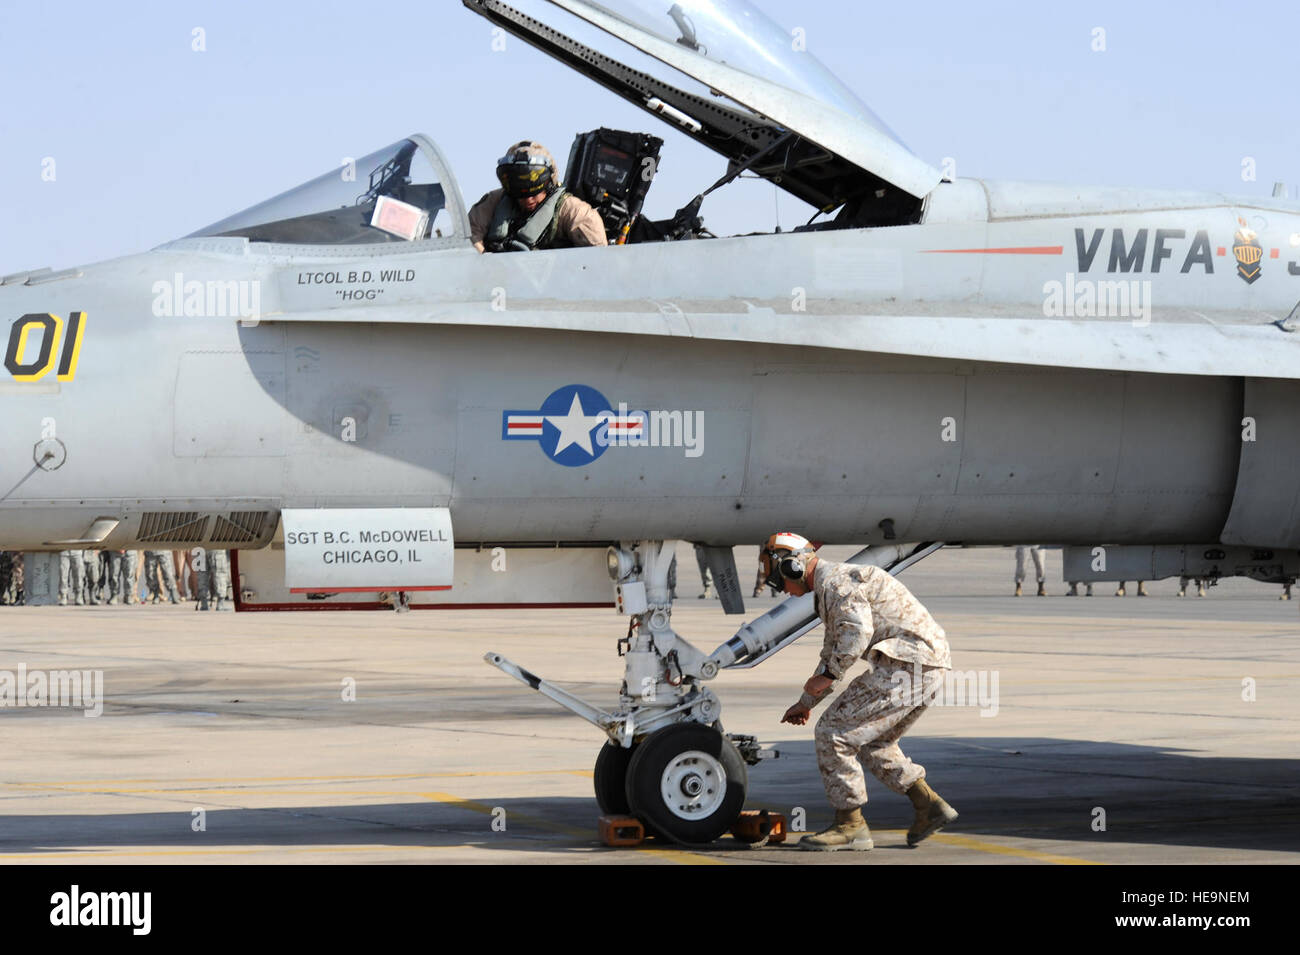 Members assigned to Marine Fighter Attack Squadron 314 at Marine Corps Air Station Miramar, Calif., rush to prepare - Stock Image